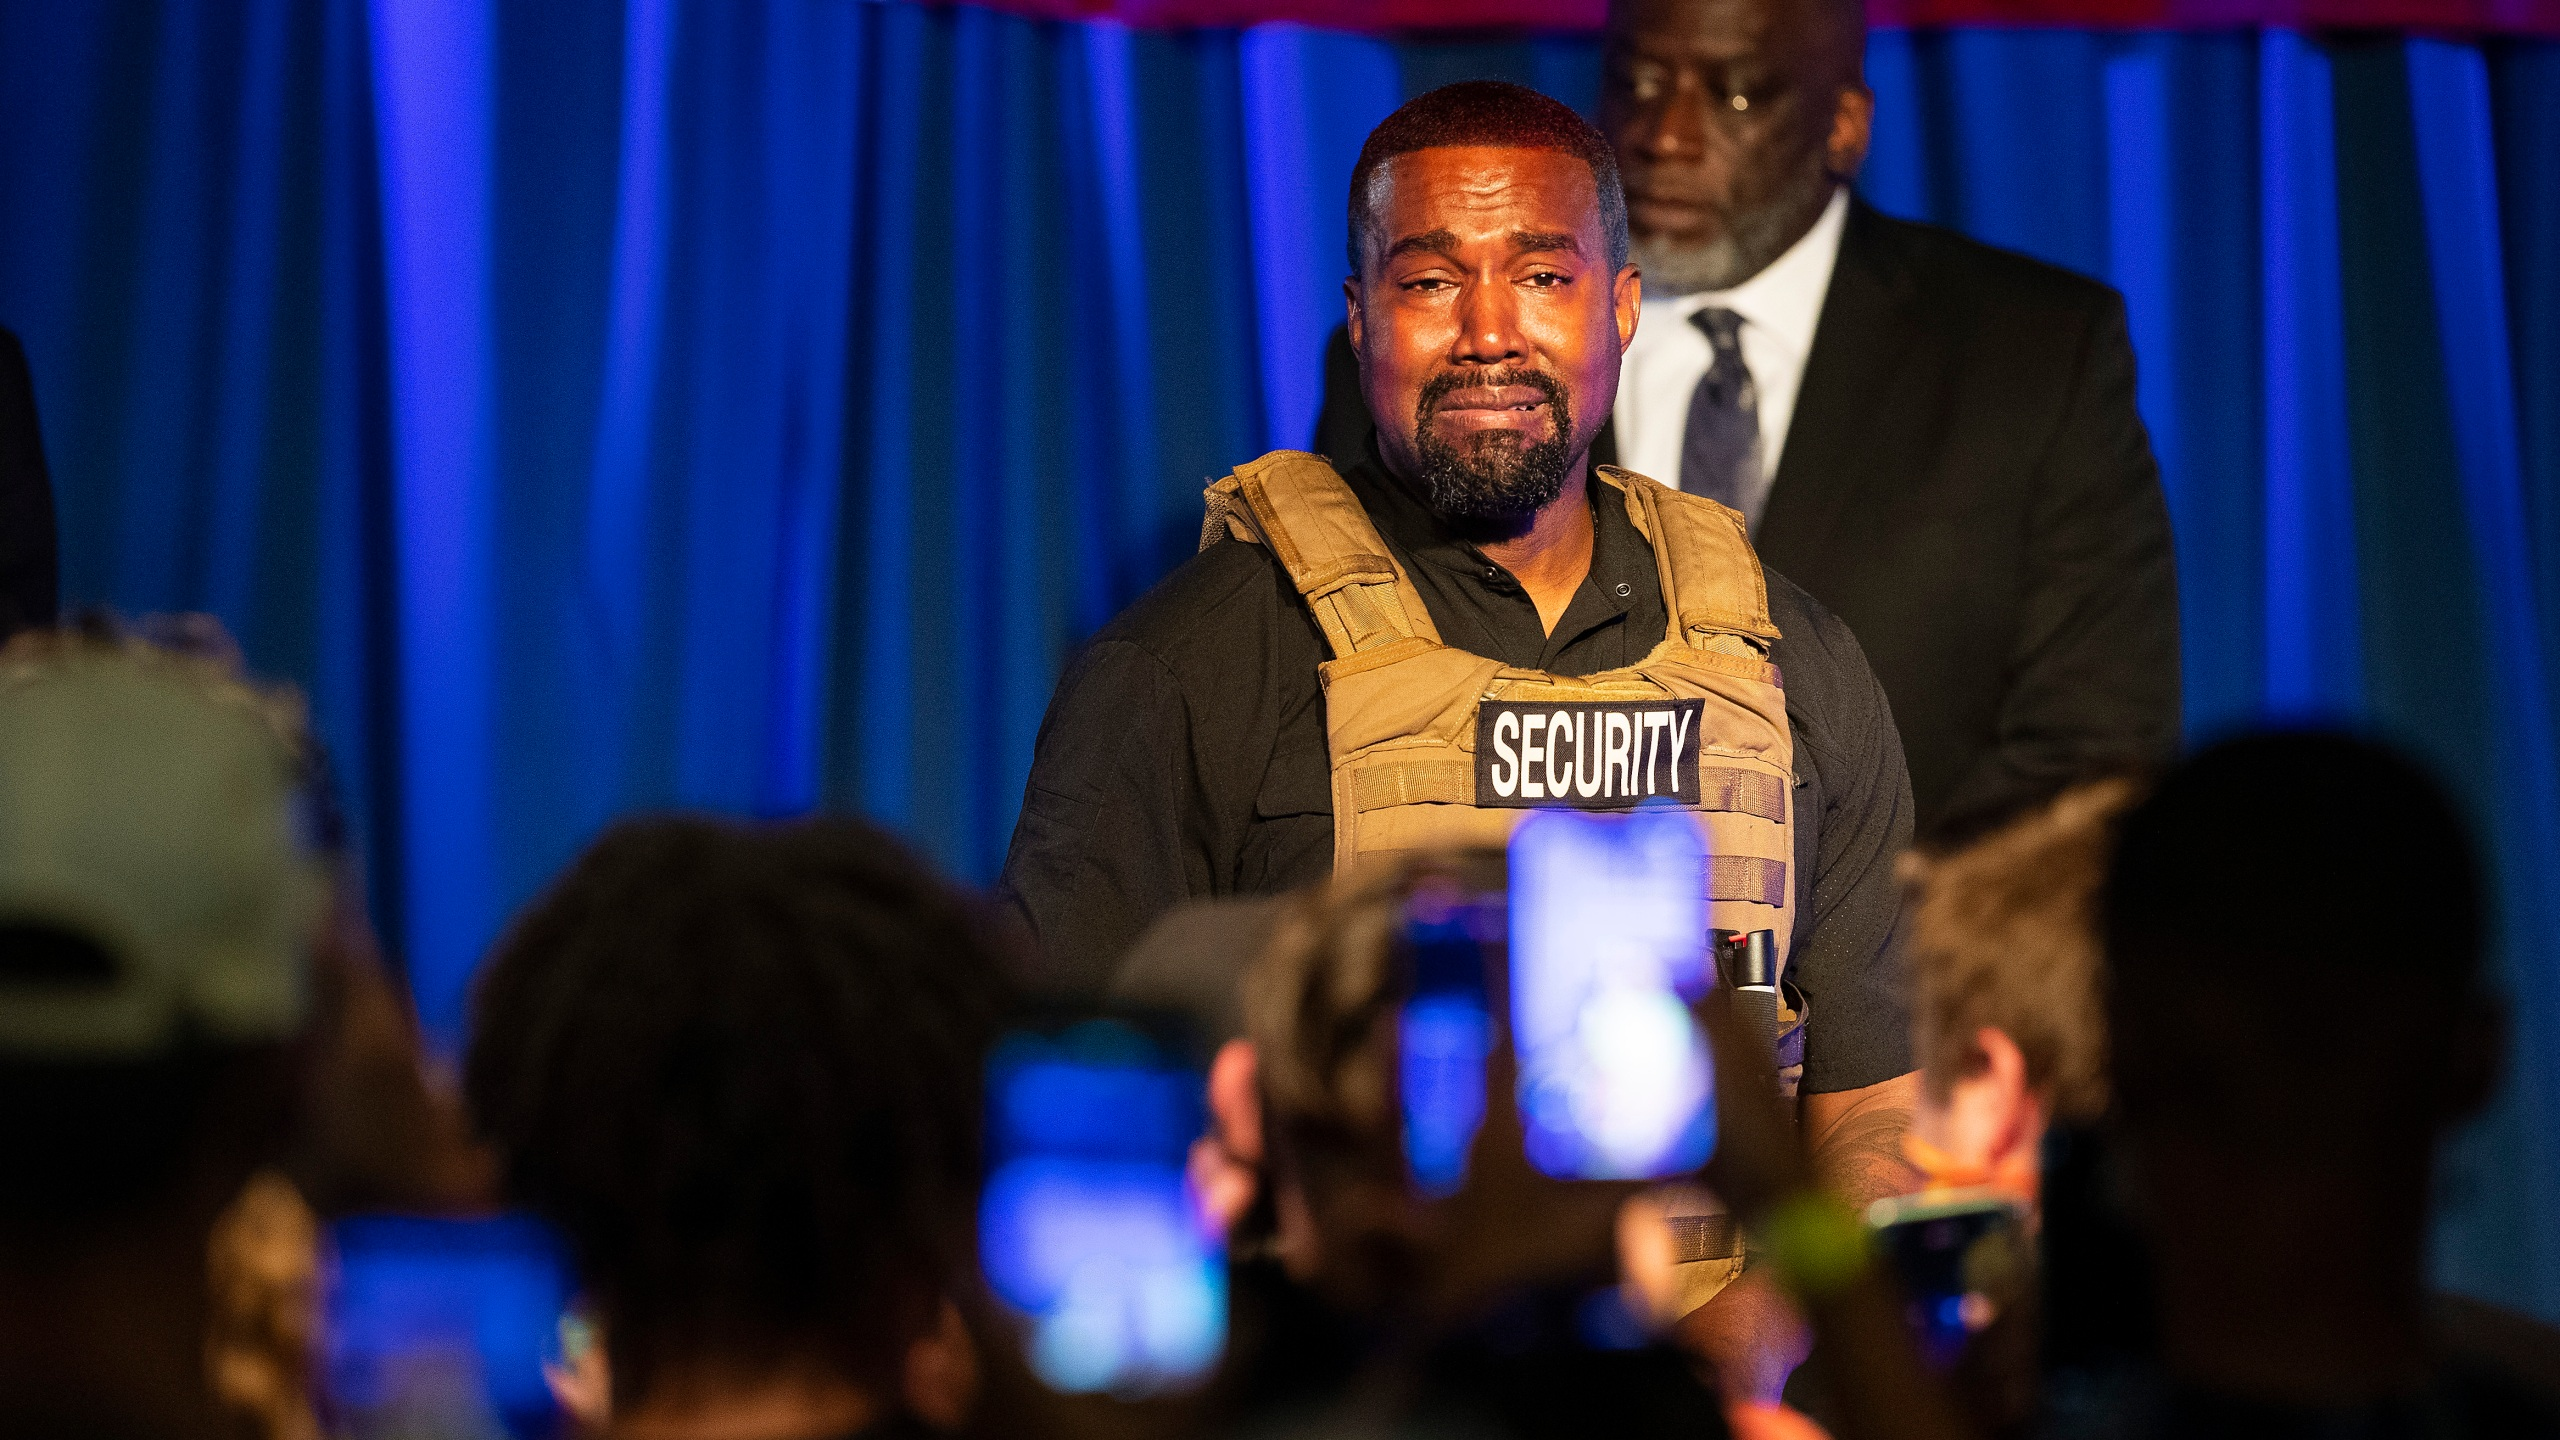 Halloween 2020 Events North Charleston, Sc Kanye West submits petitions to appear on Tennessee ballot | FOX 2